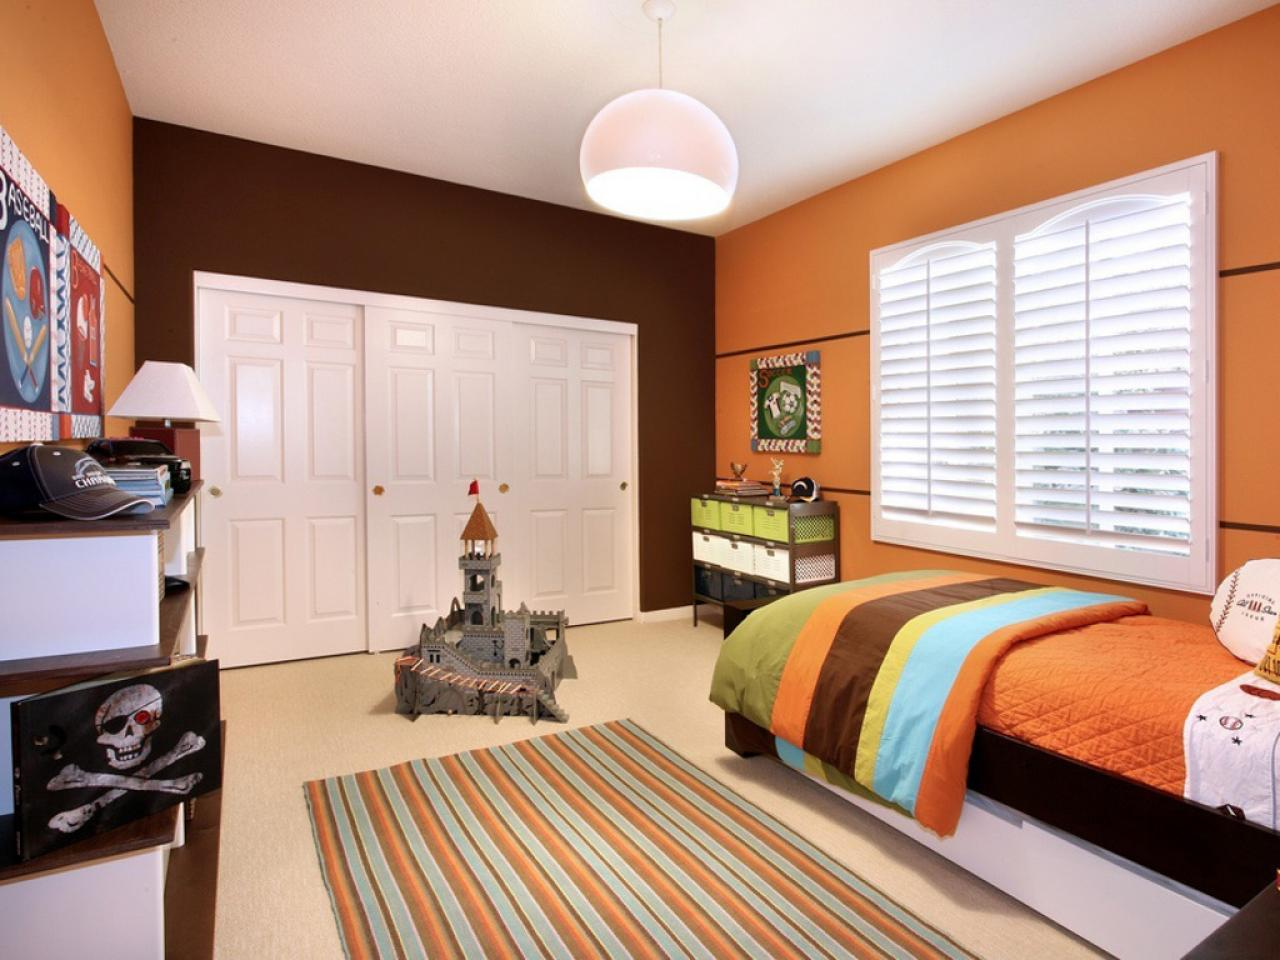 Bedroom paint color ideas pictures options hgtv for Bedroom ideas pictures